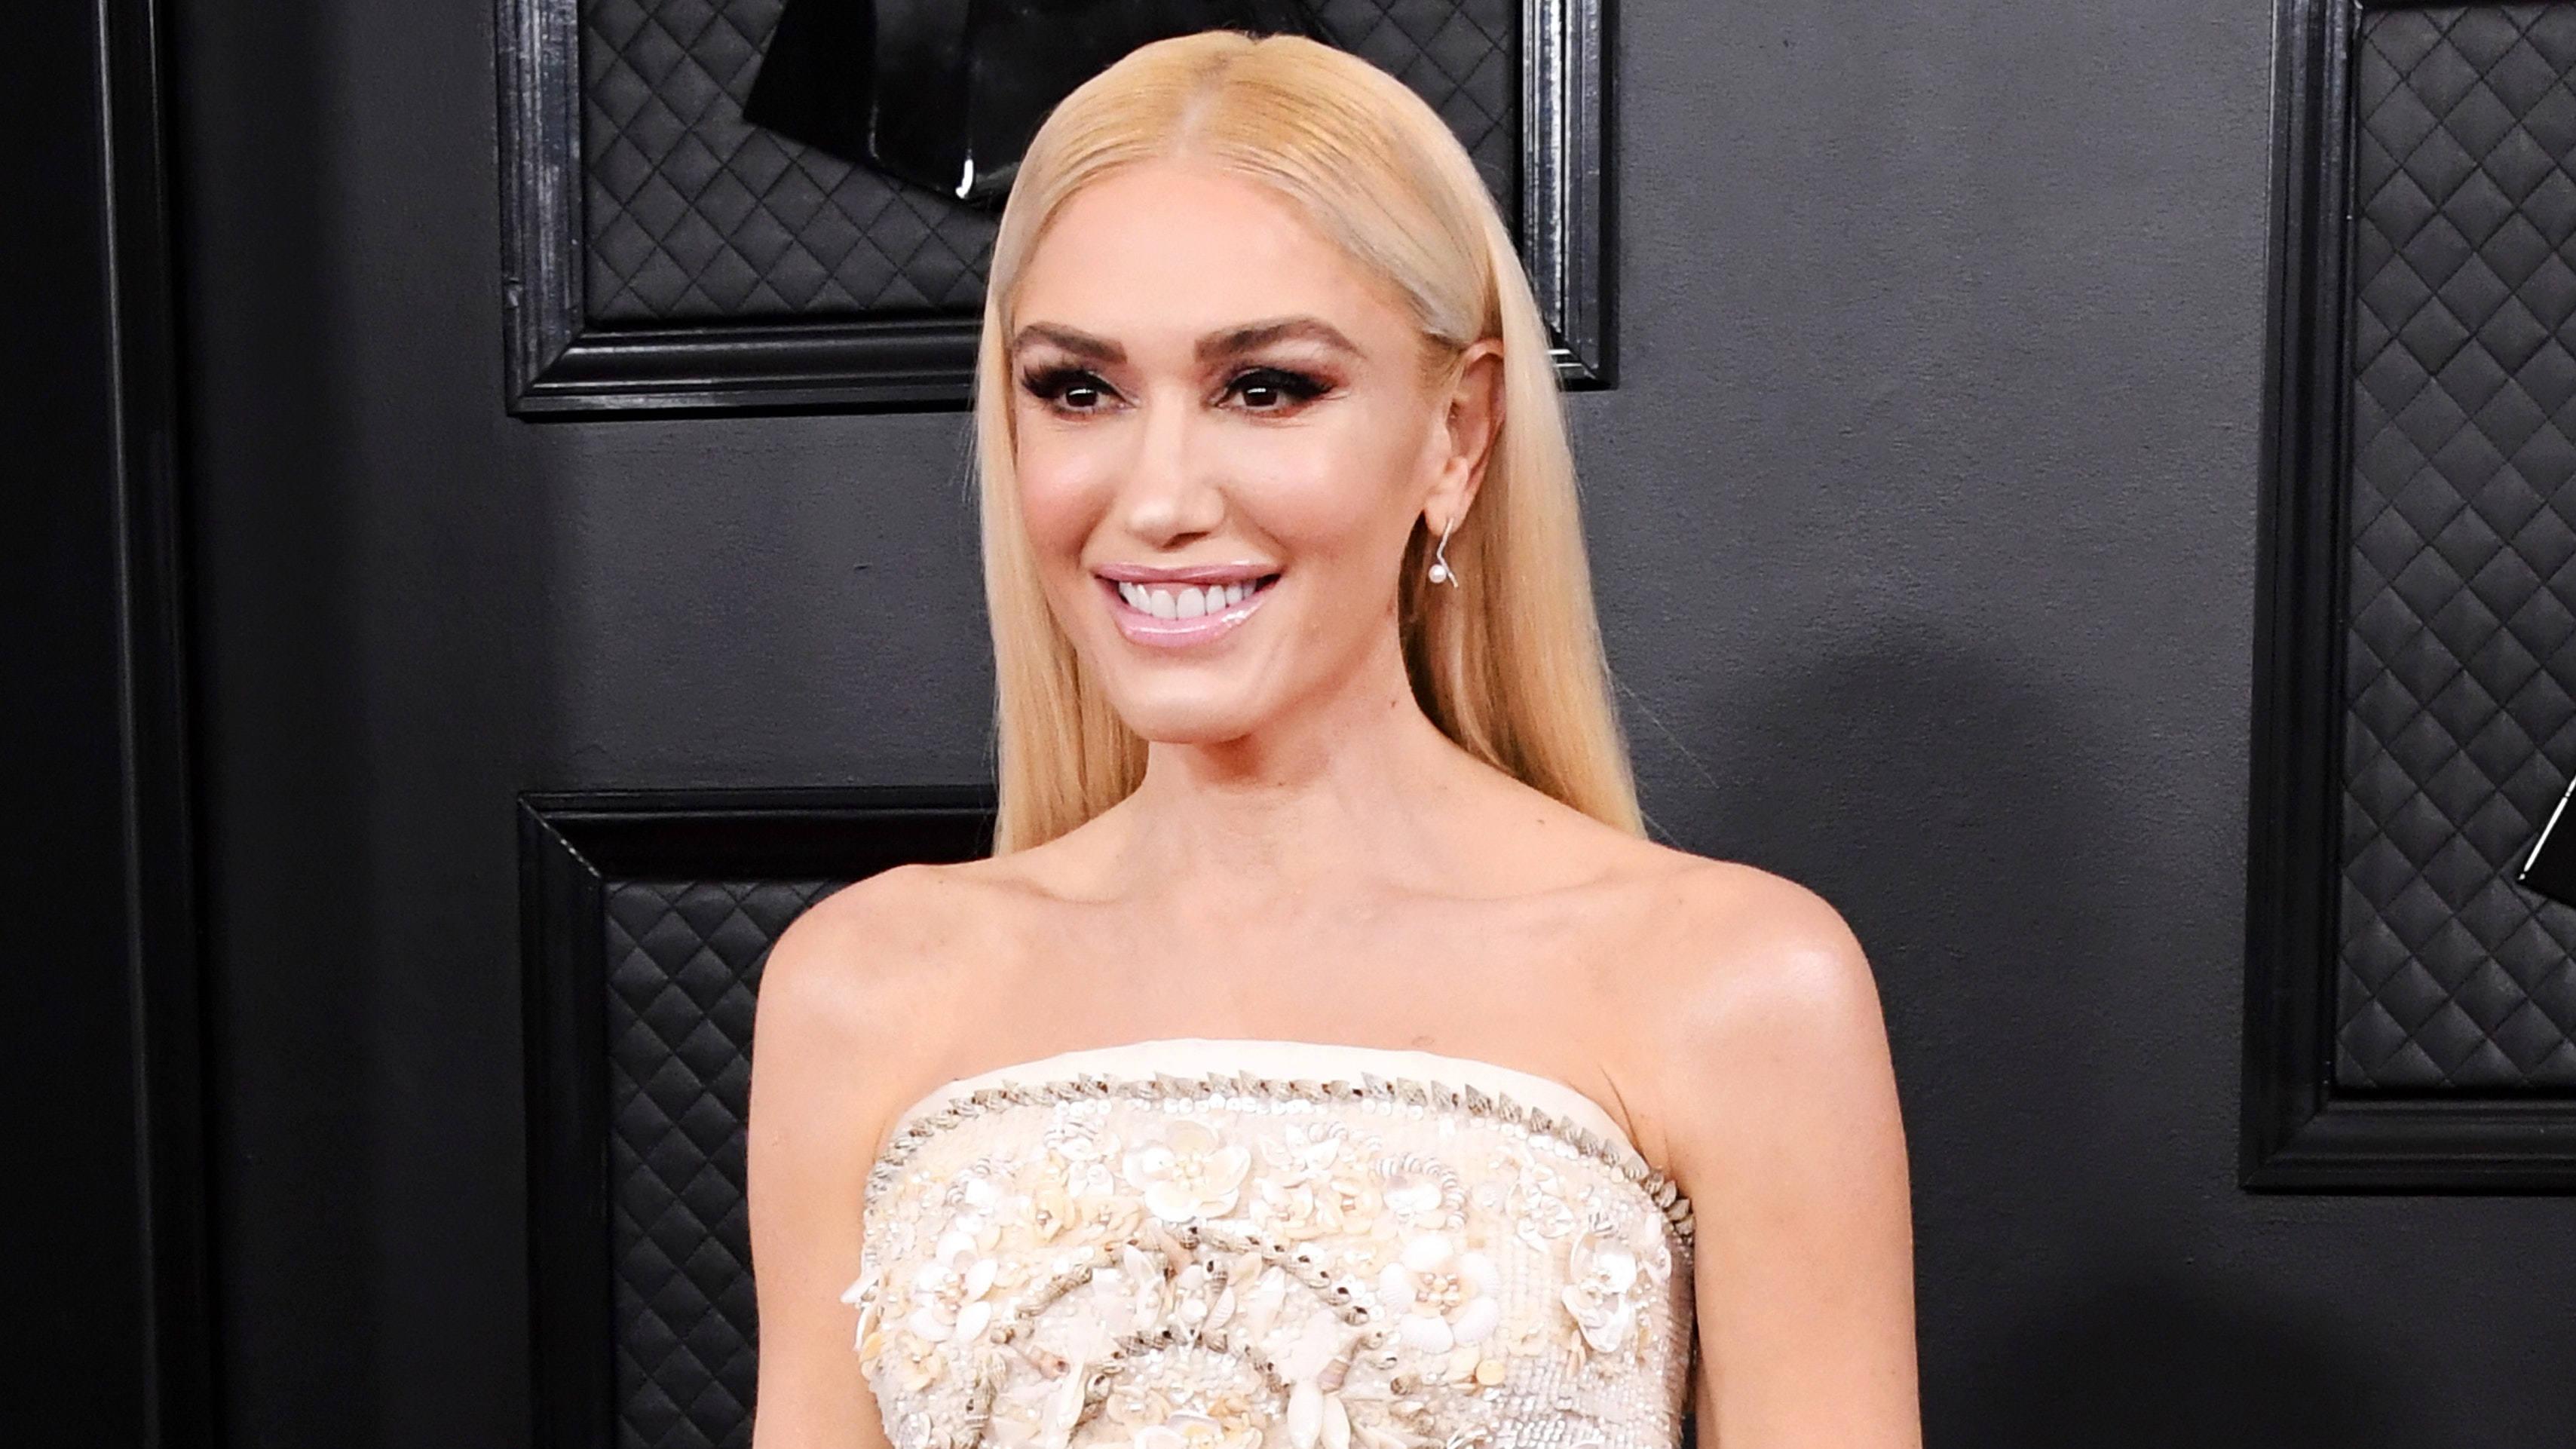 Gwen Stefani's Glowing Complexion at the GRAMMYs Is Our Ultimate Skin Inspiration